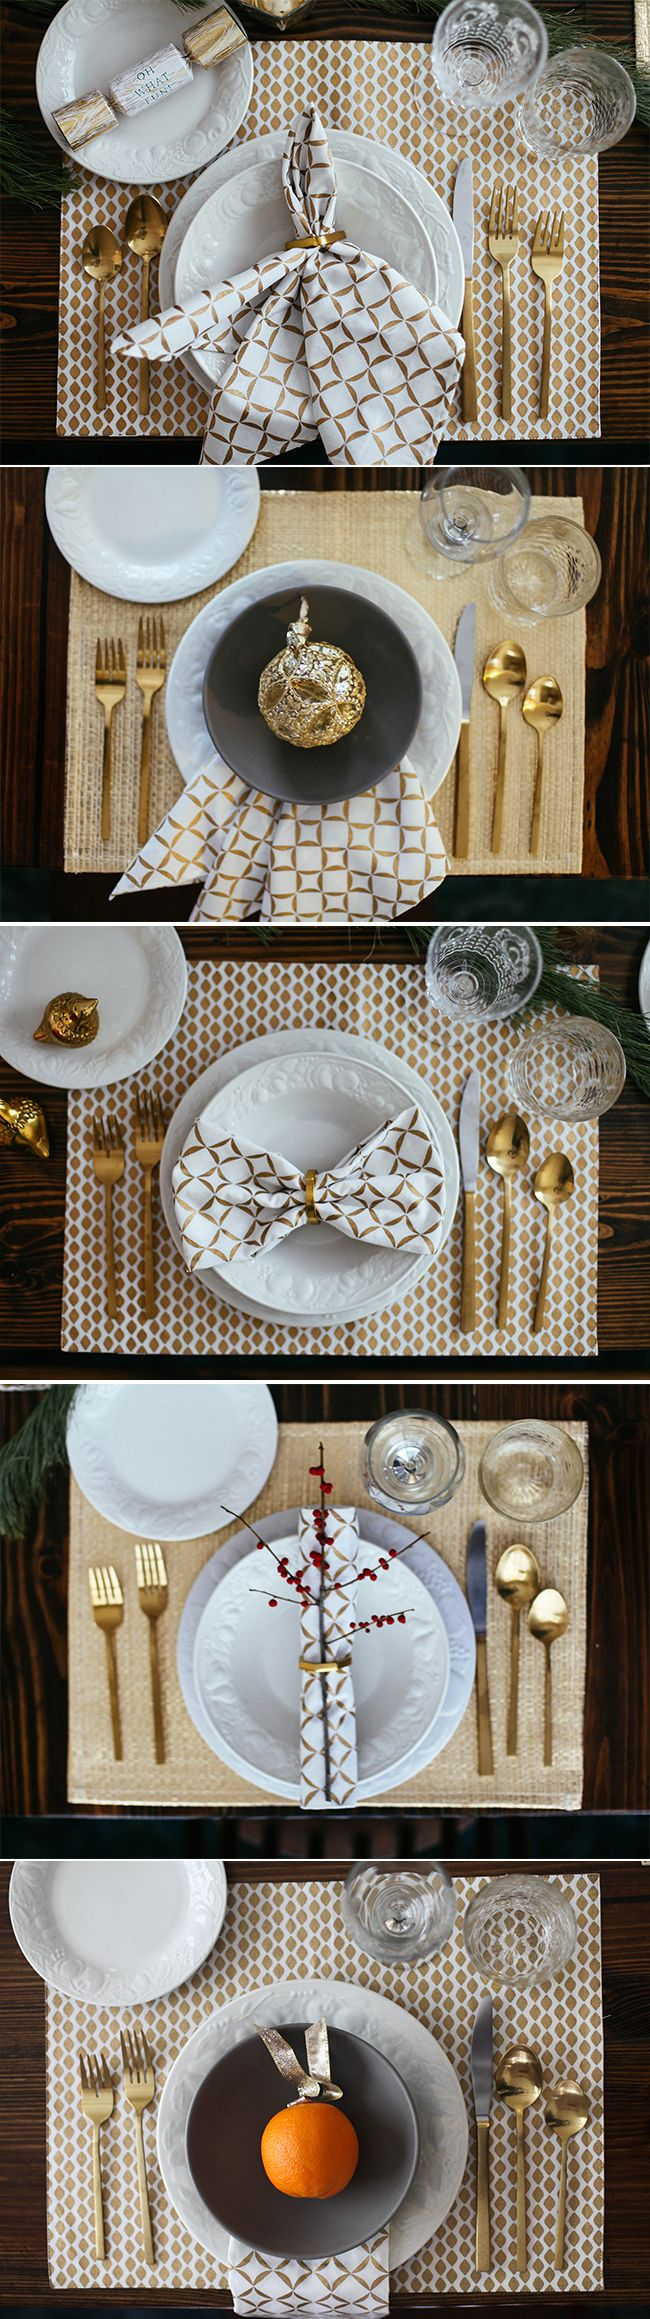 #tablesettings #napkin Christmas and New Year Place Setting Ideas | IHOD